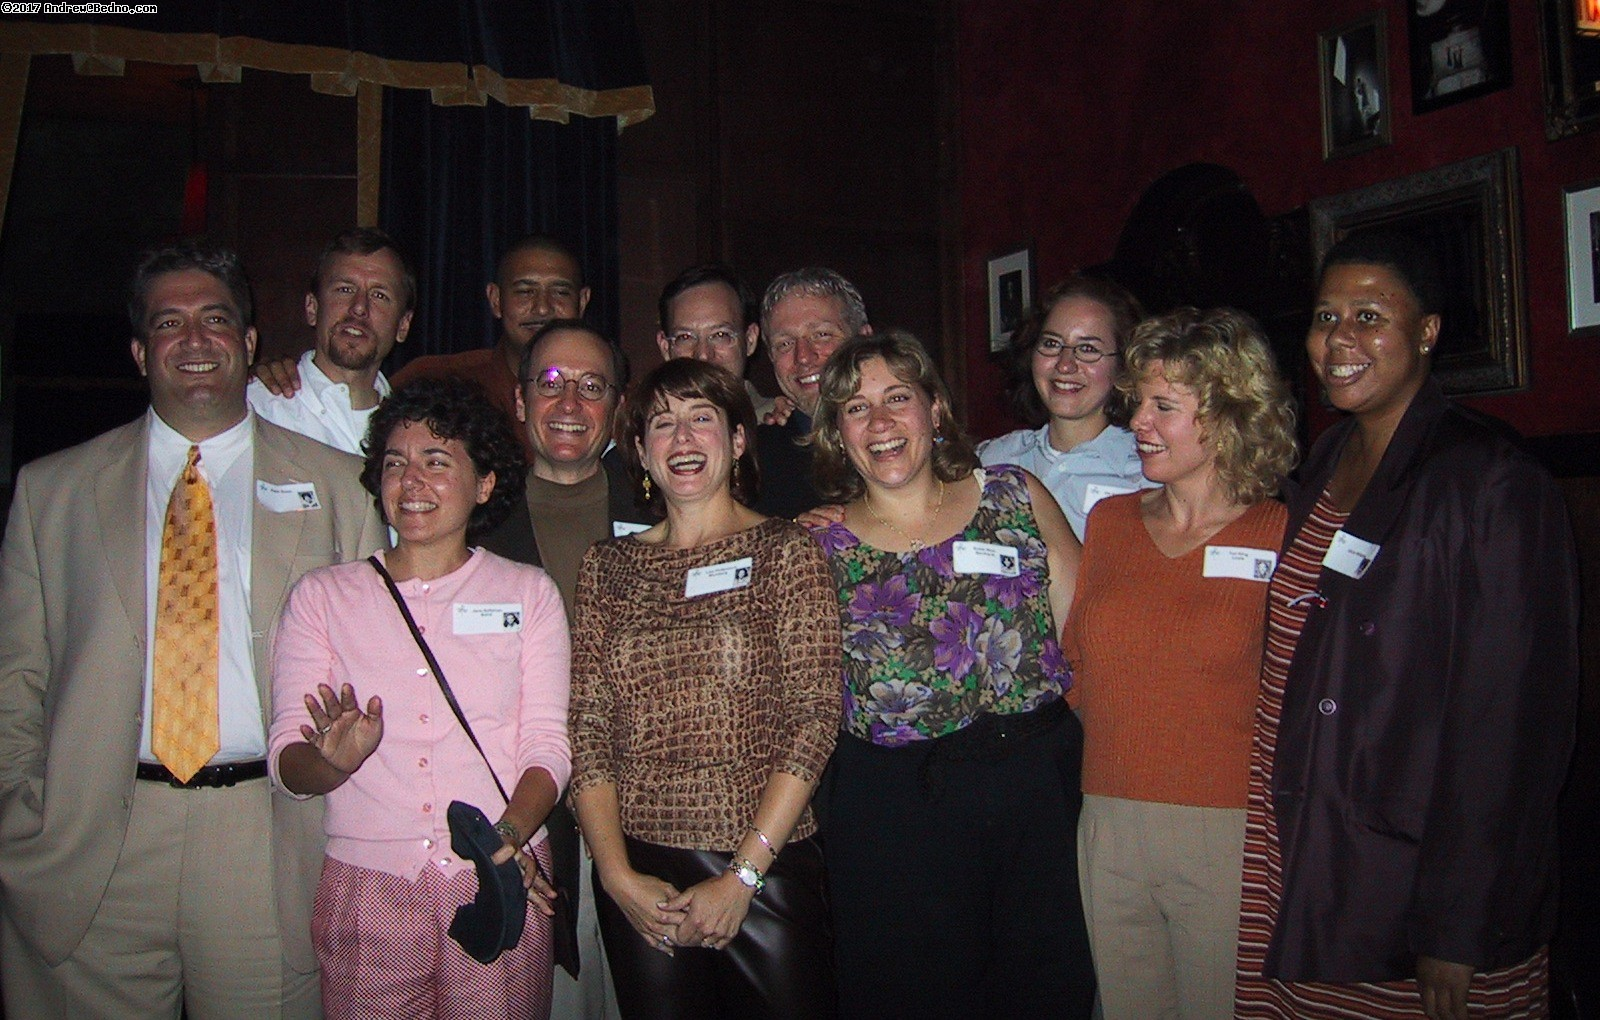 FWP 1981 reunion: These folks are the FWP lifers, attended all fourteen years.